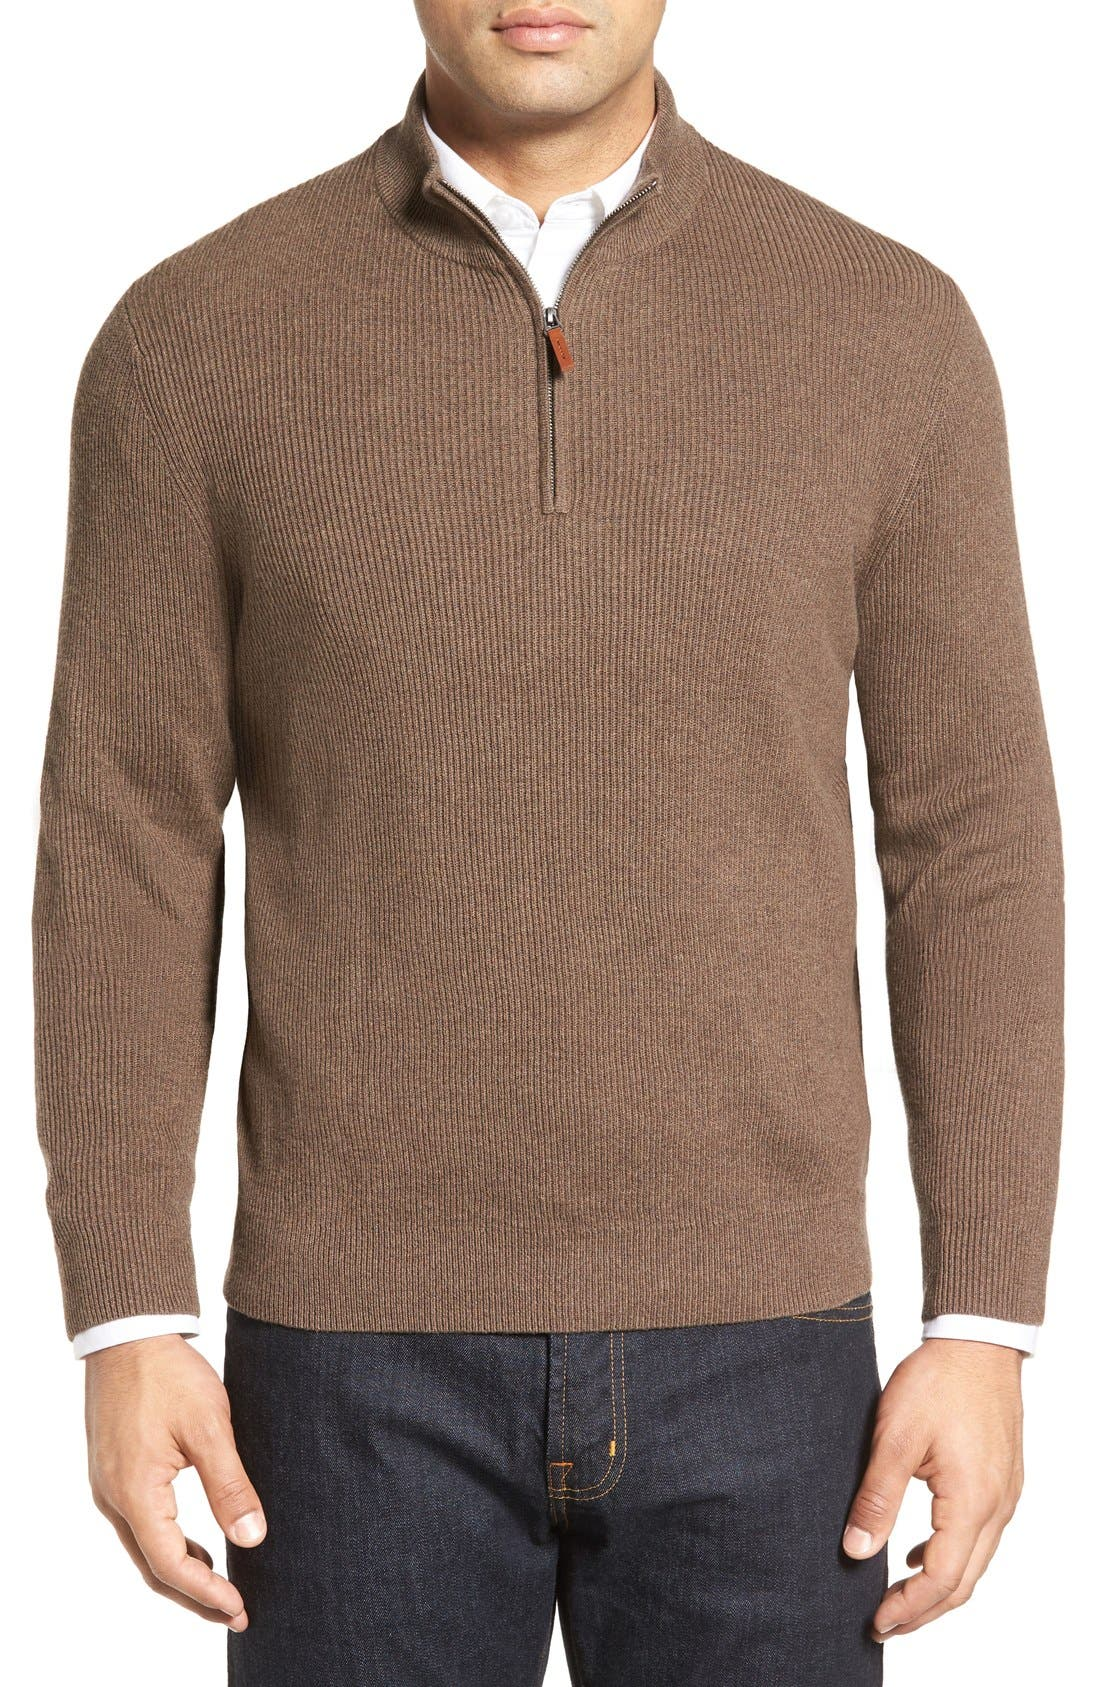 Alternate Image 1 Selected - Nordstrom Men's Shop Cotton & Cashmere Rib Knit Sweater (Regular & Tall)